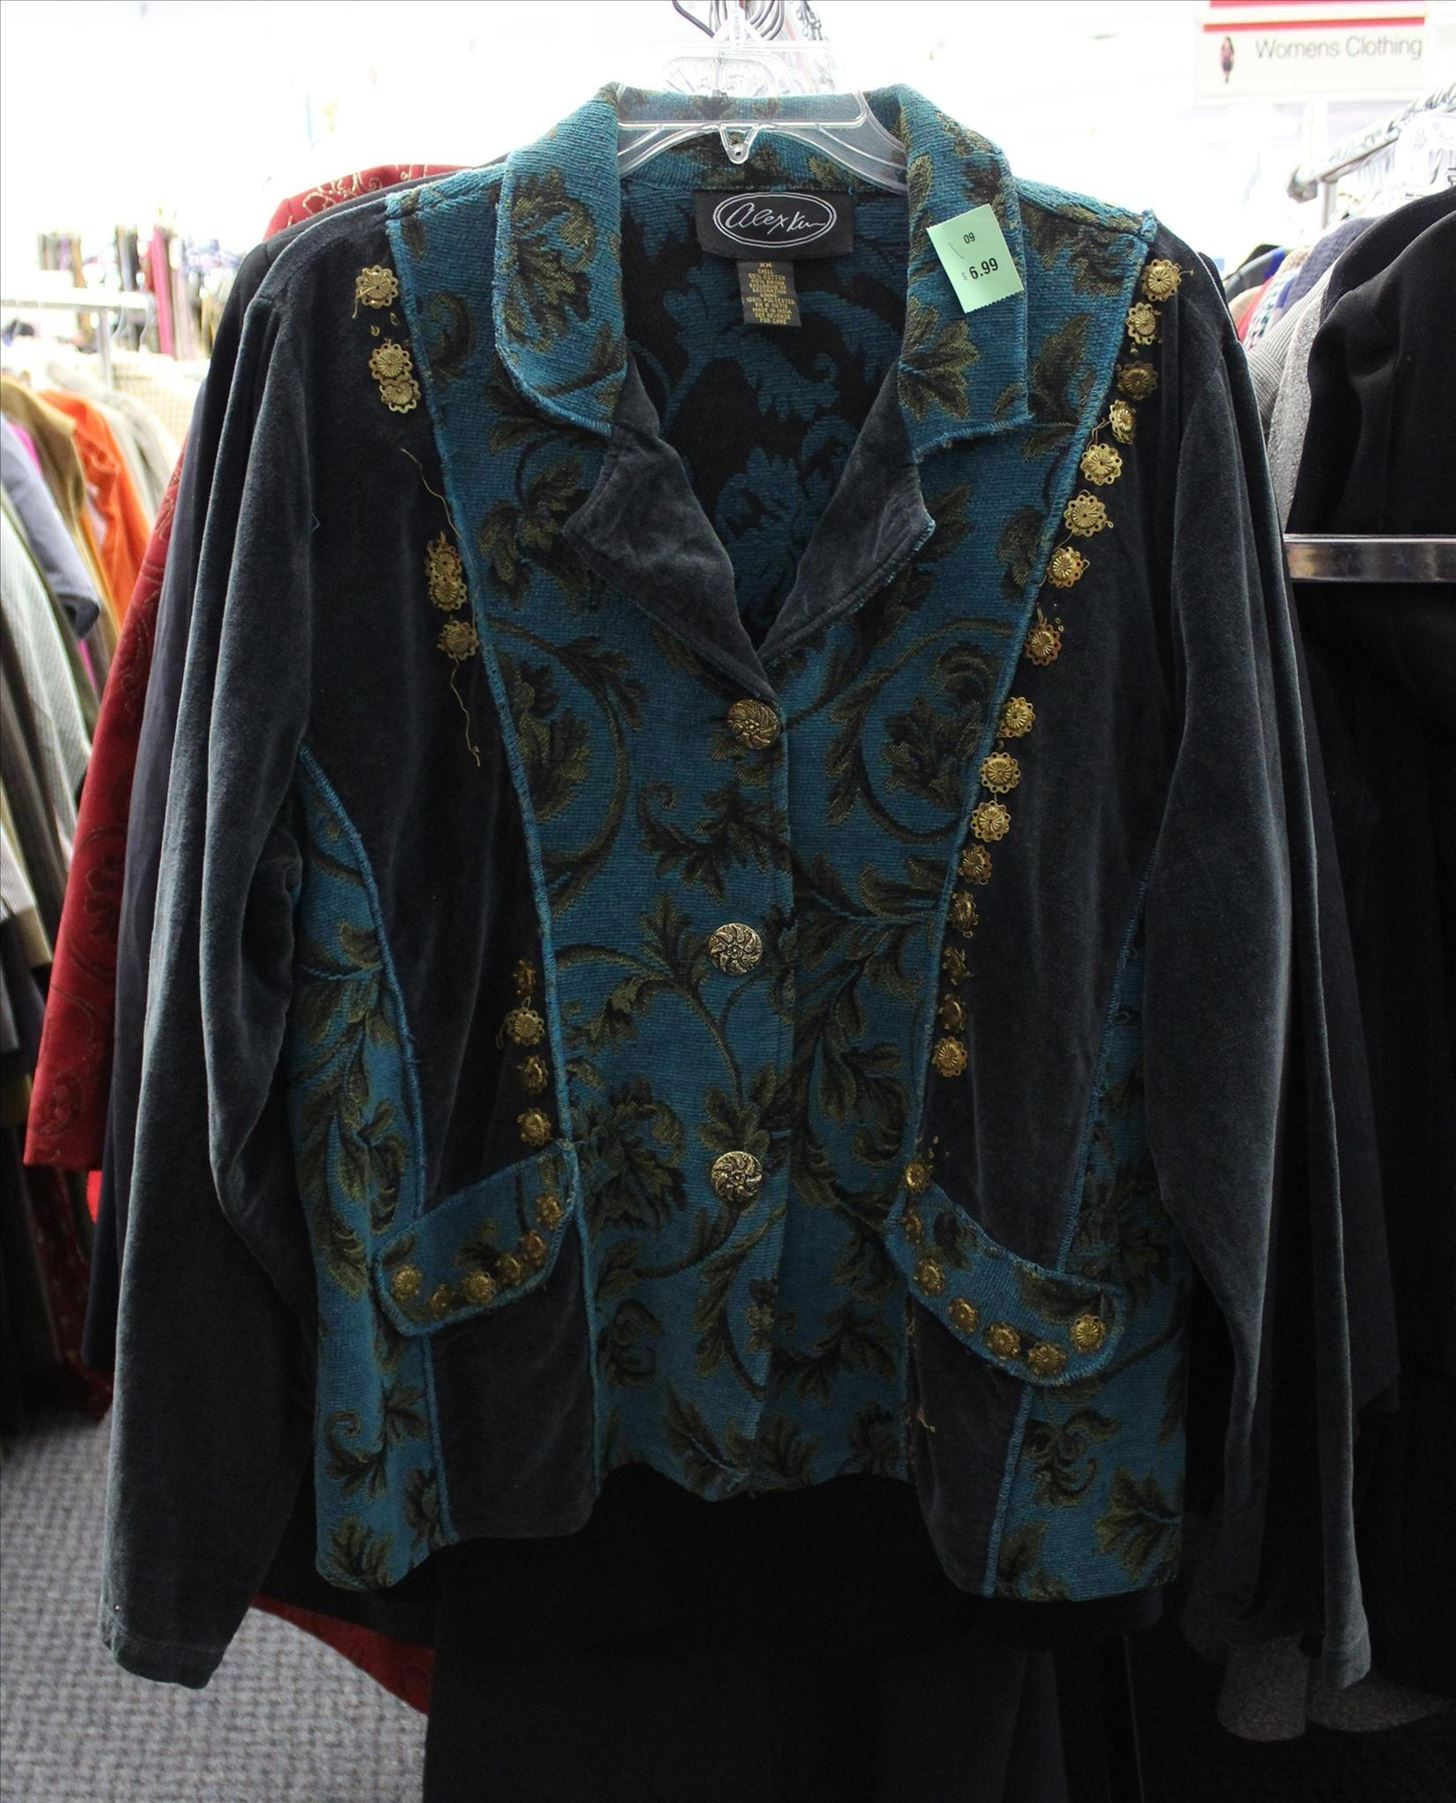 Steampunk on a Thrift-Store Budget: A Guide to Successful Thrifting